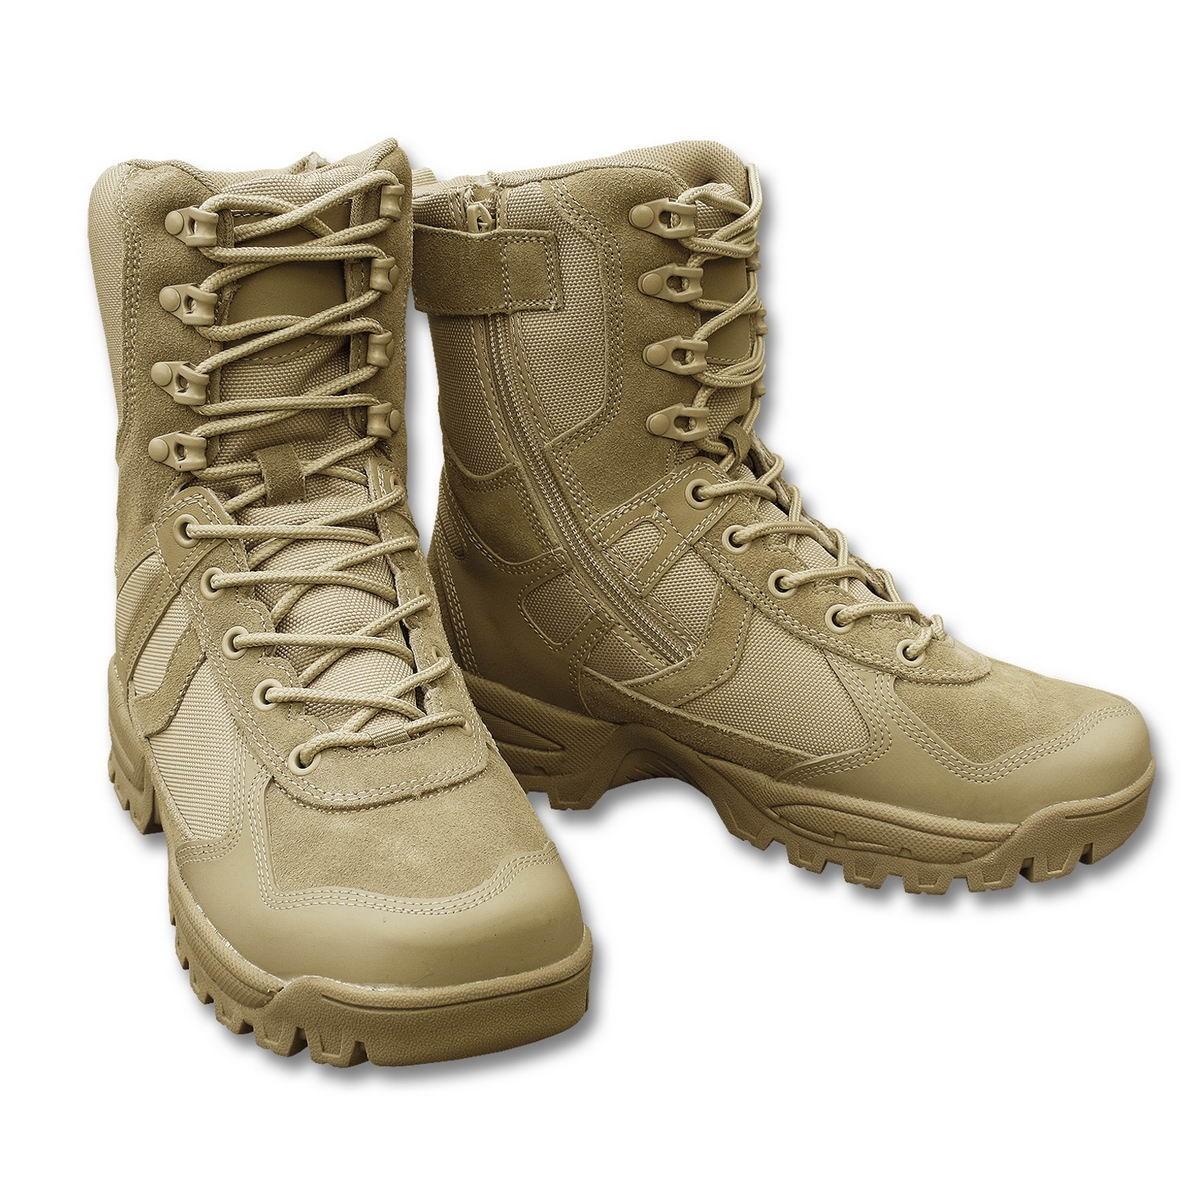 Combat Boots Tactical Army Tactical Army Patrol YmIf6gvb7y